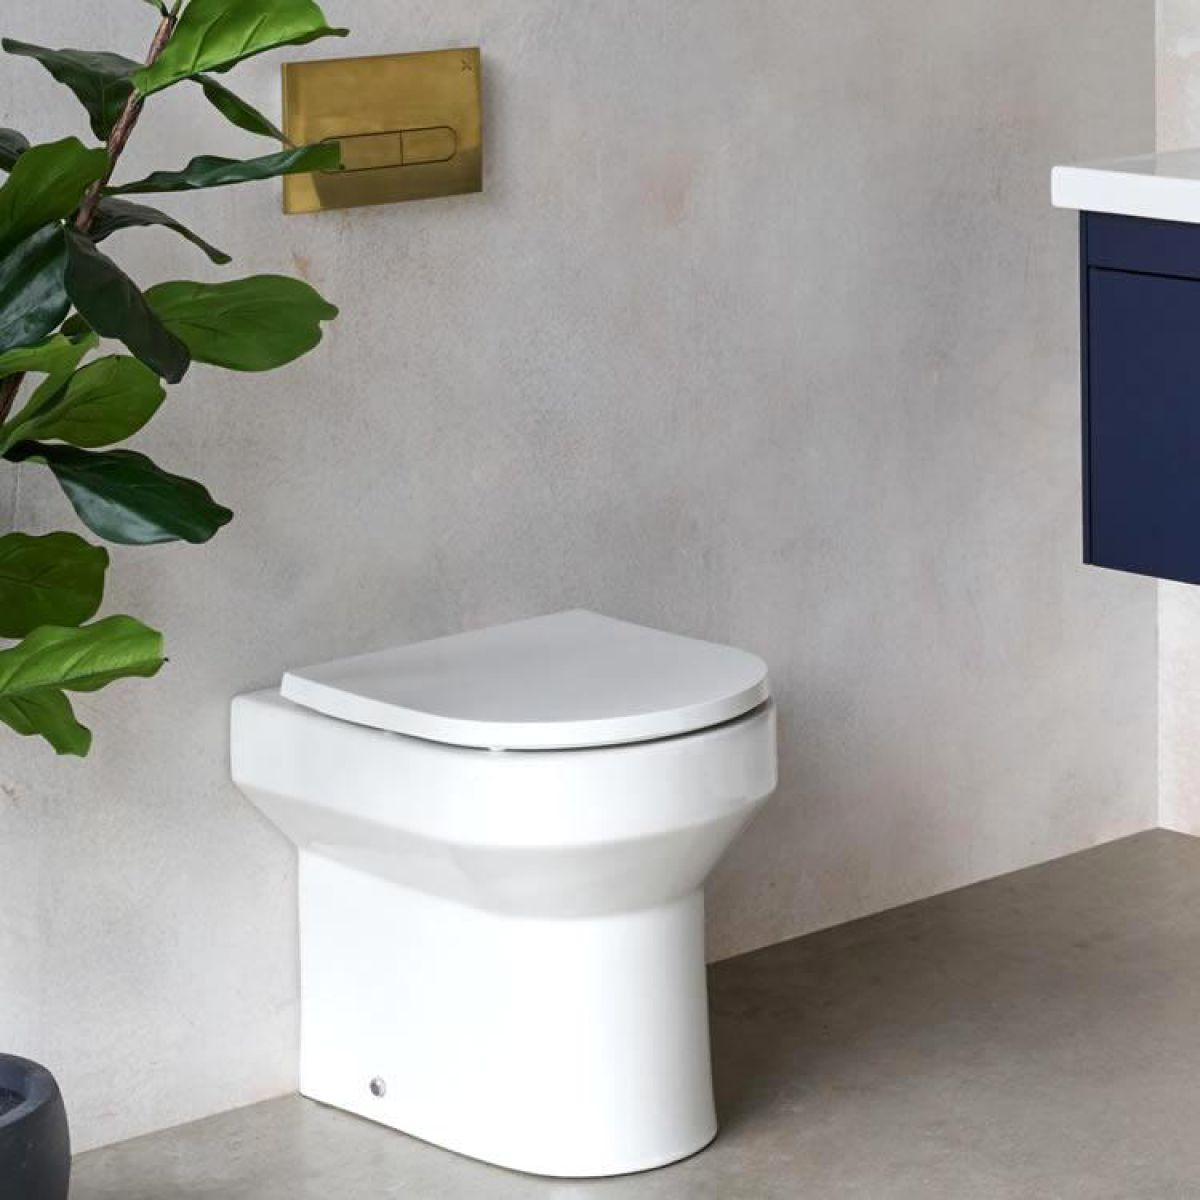 Britton Shoreditch Round Rimless Back to Wall Toilet with Soft Close Seat - SHR046